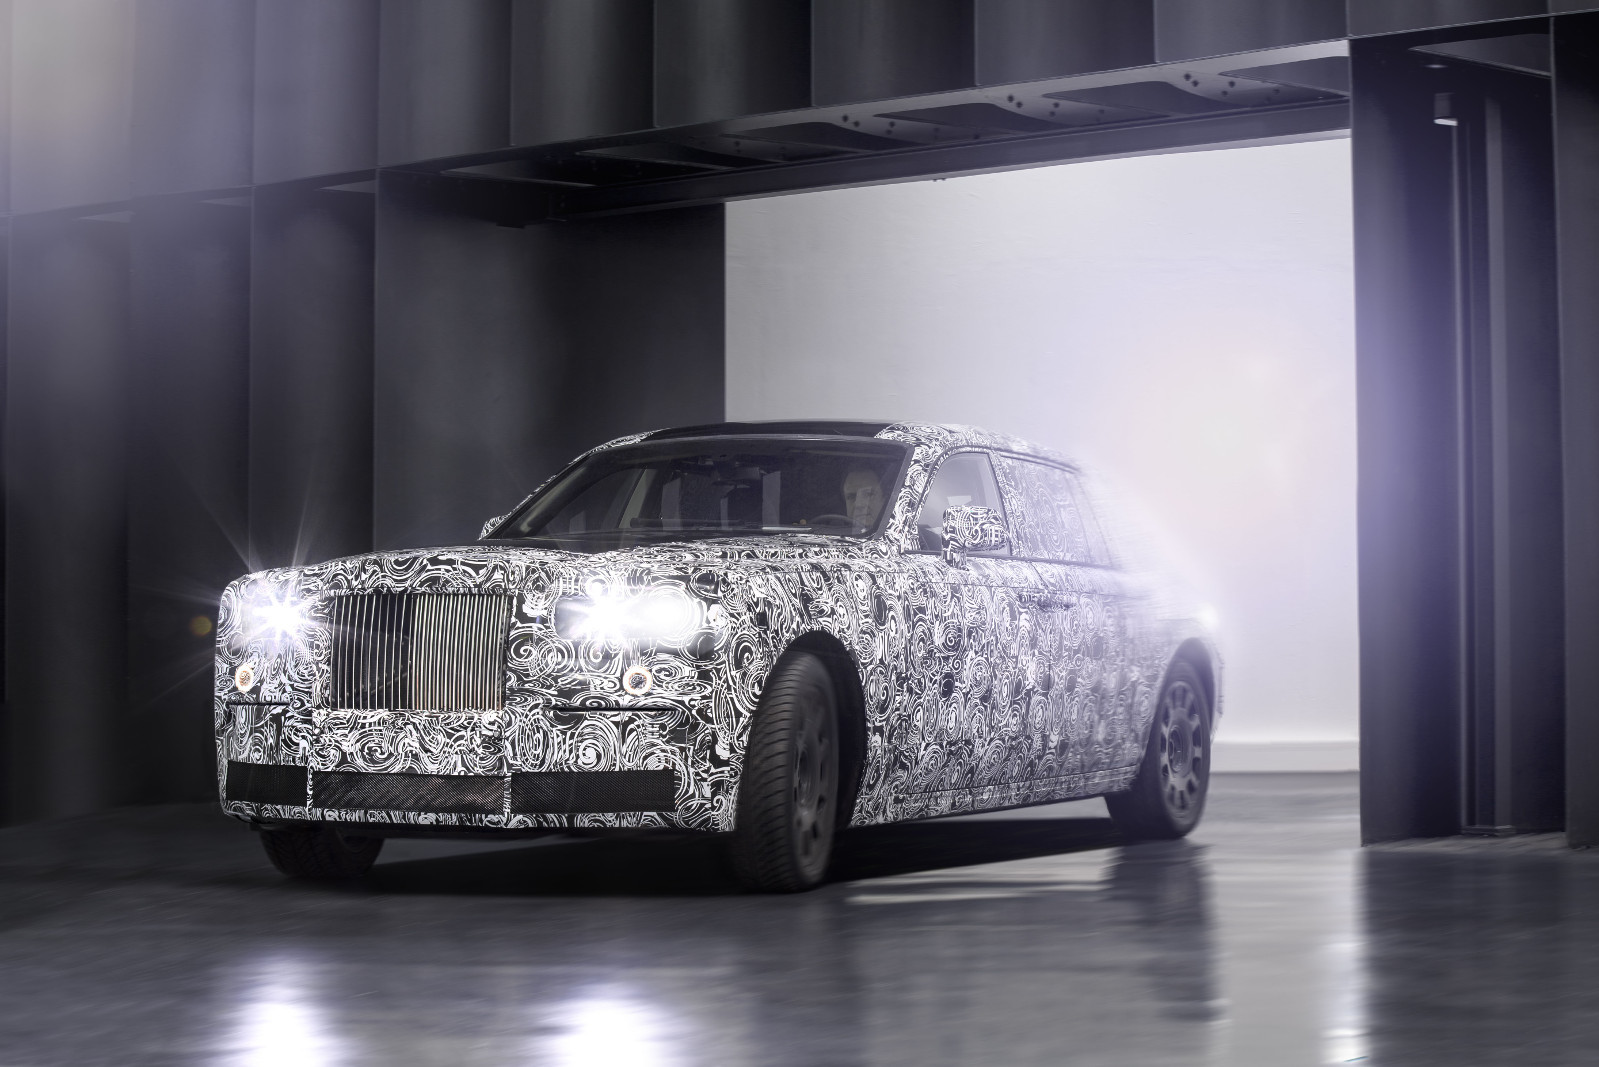 Aluminium Space-Frame Architecture from Rolls Royce